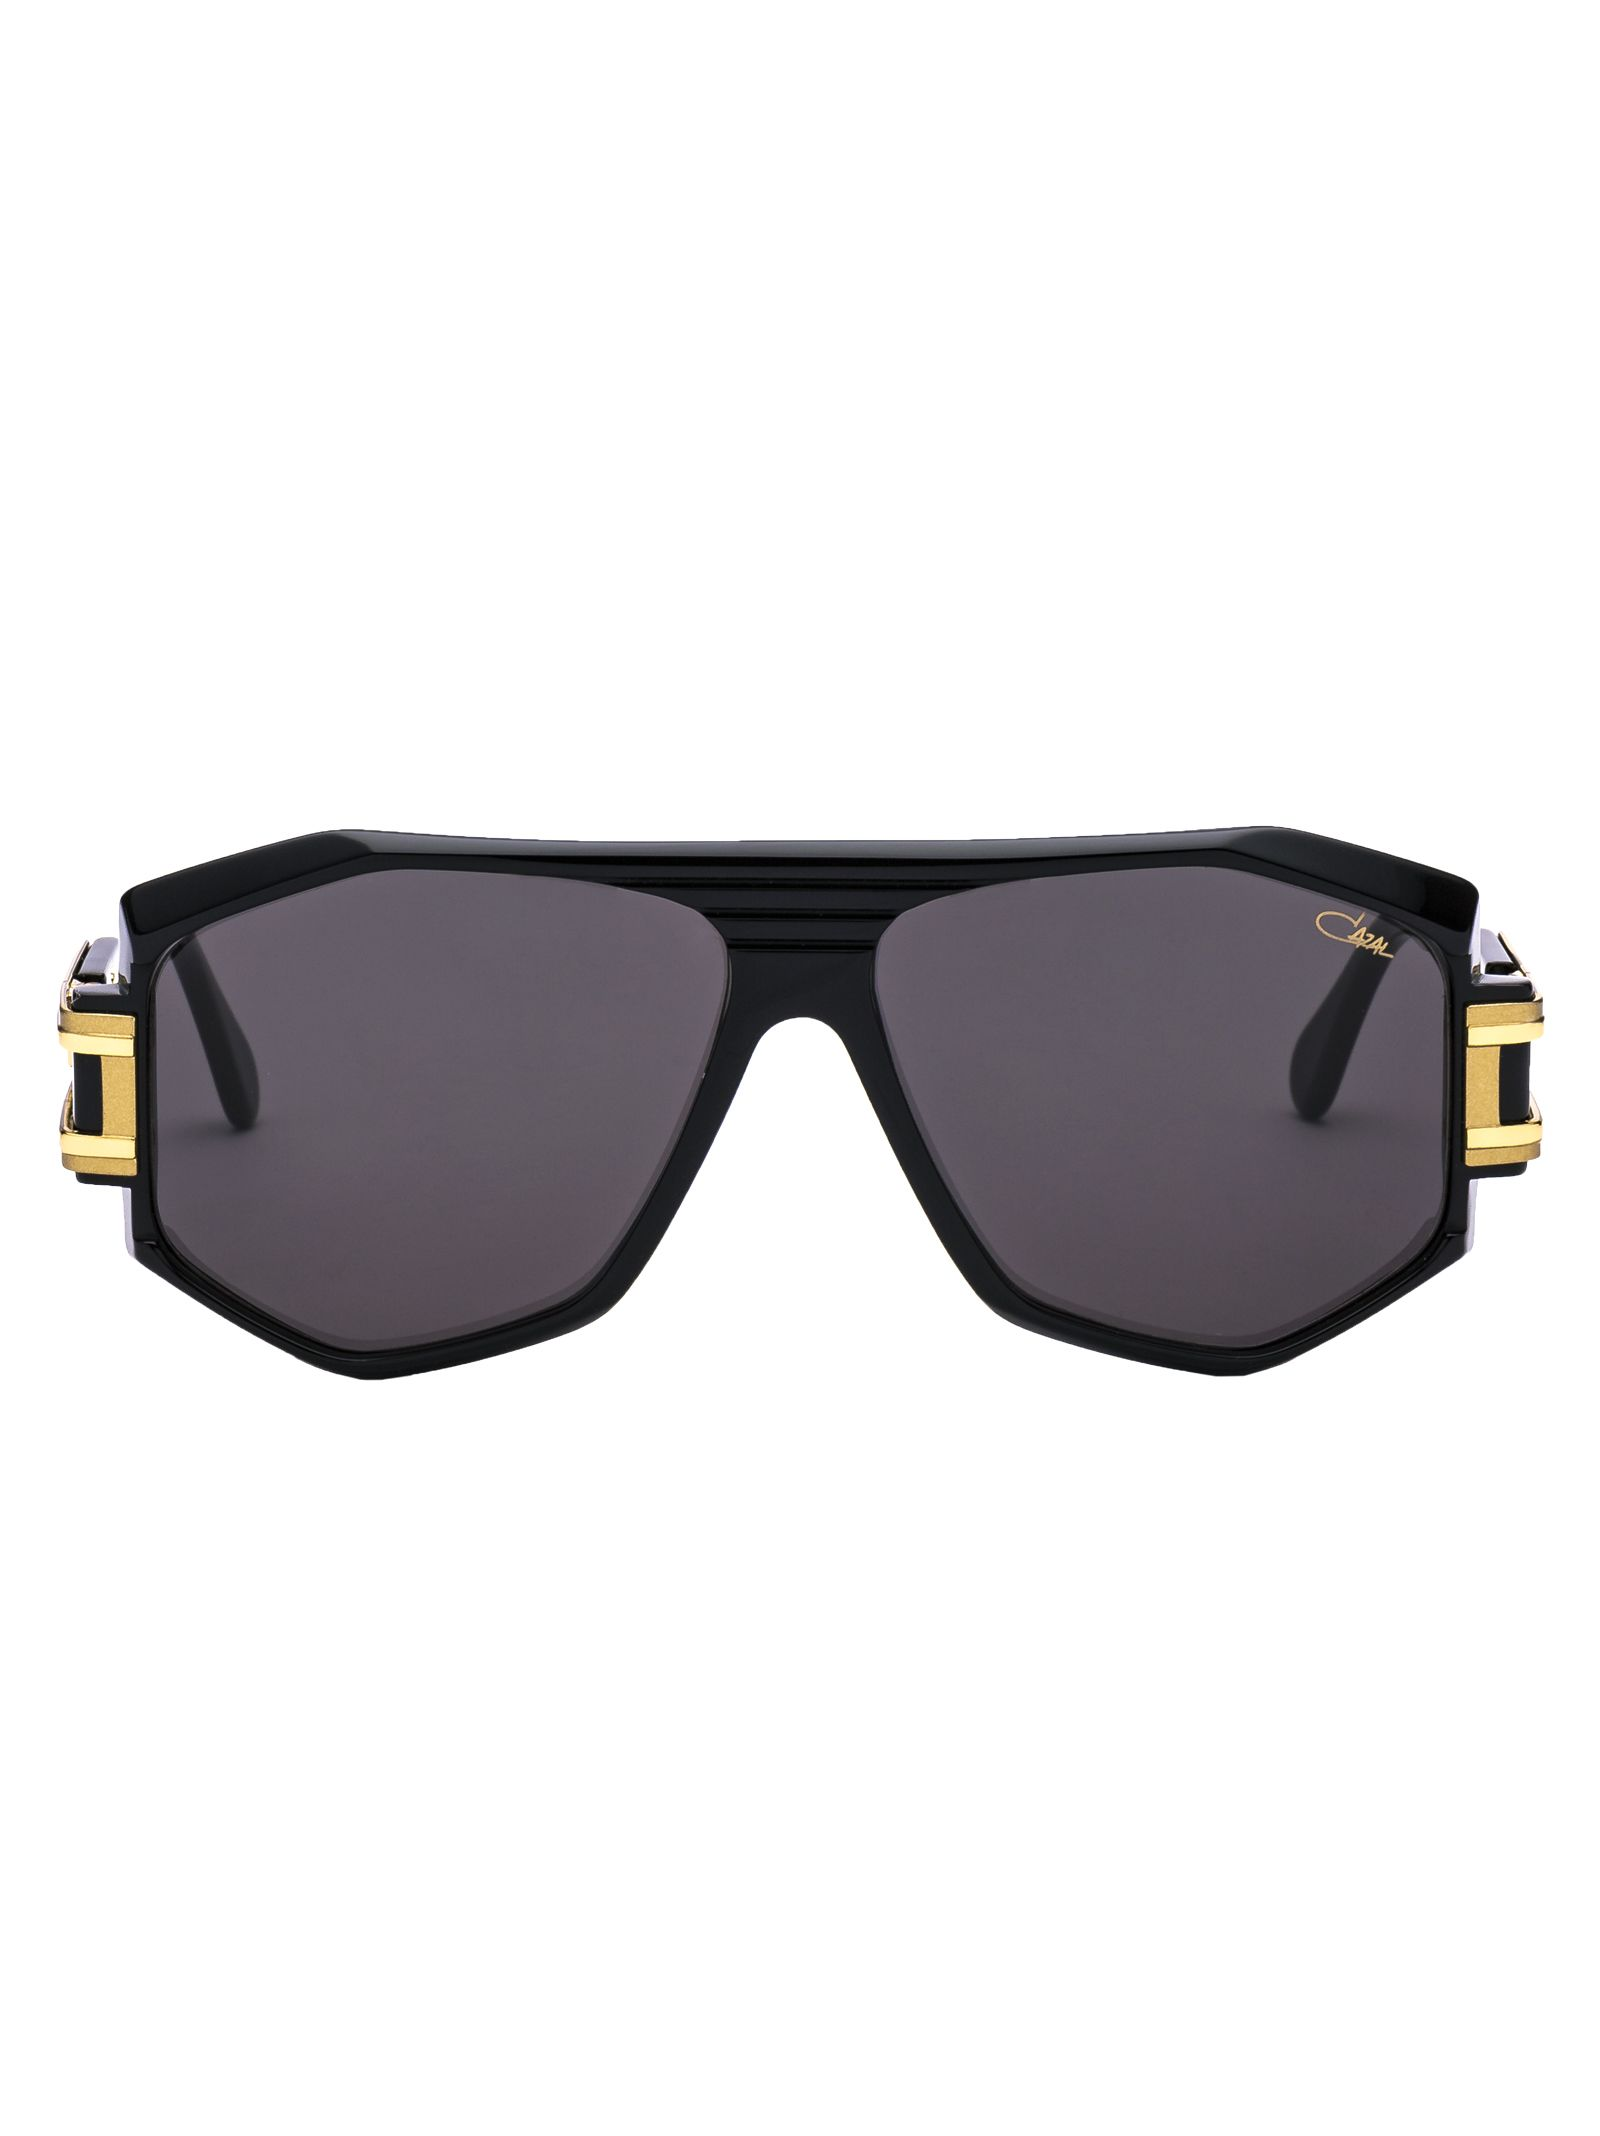 fd61e3f822 Cazal Sunglasses - Compare Prices   Online Shopping Australia